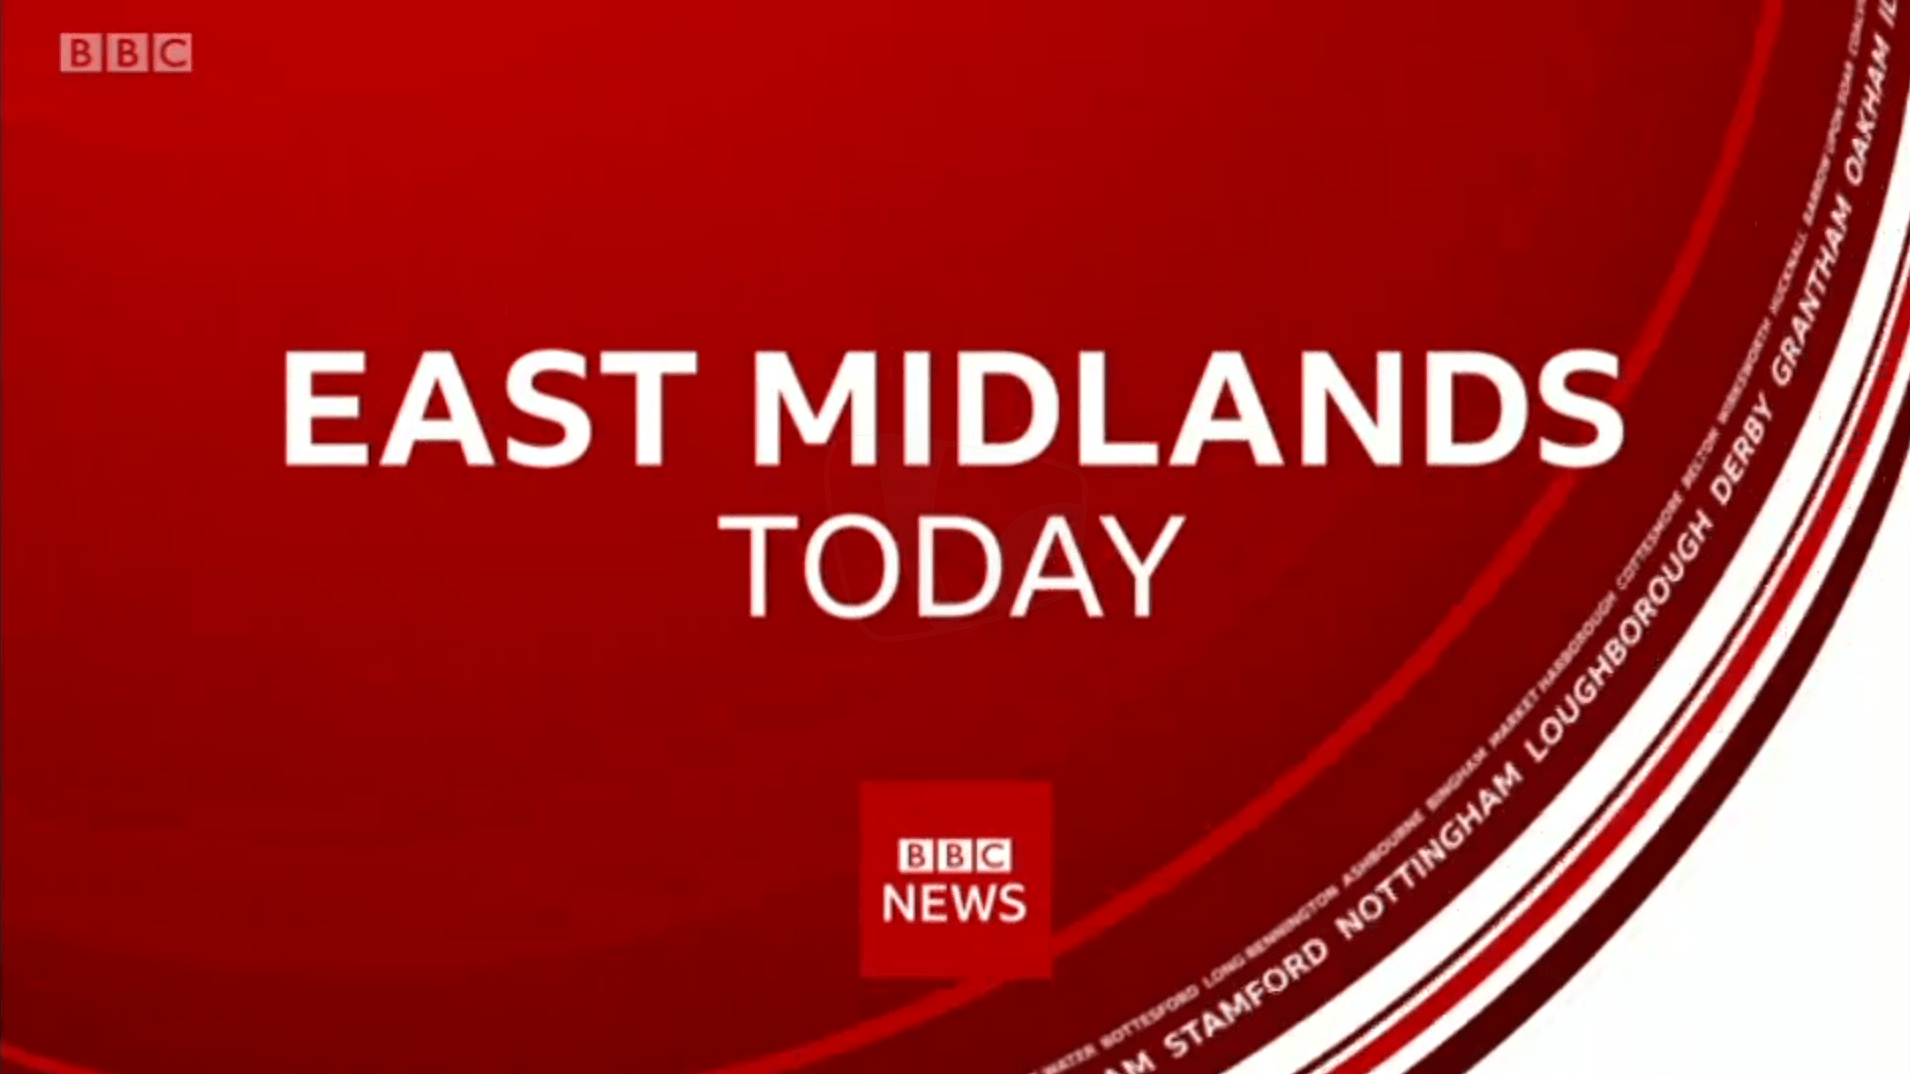 PICTURED: BBC East Midlands Today opening titles.